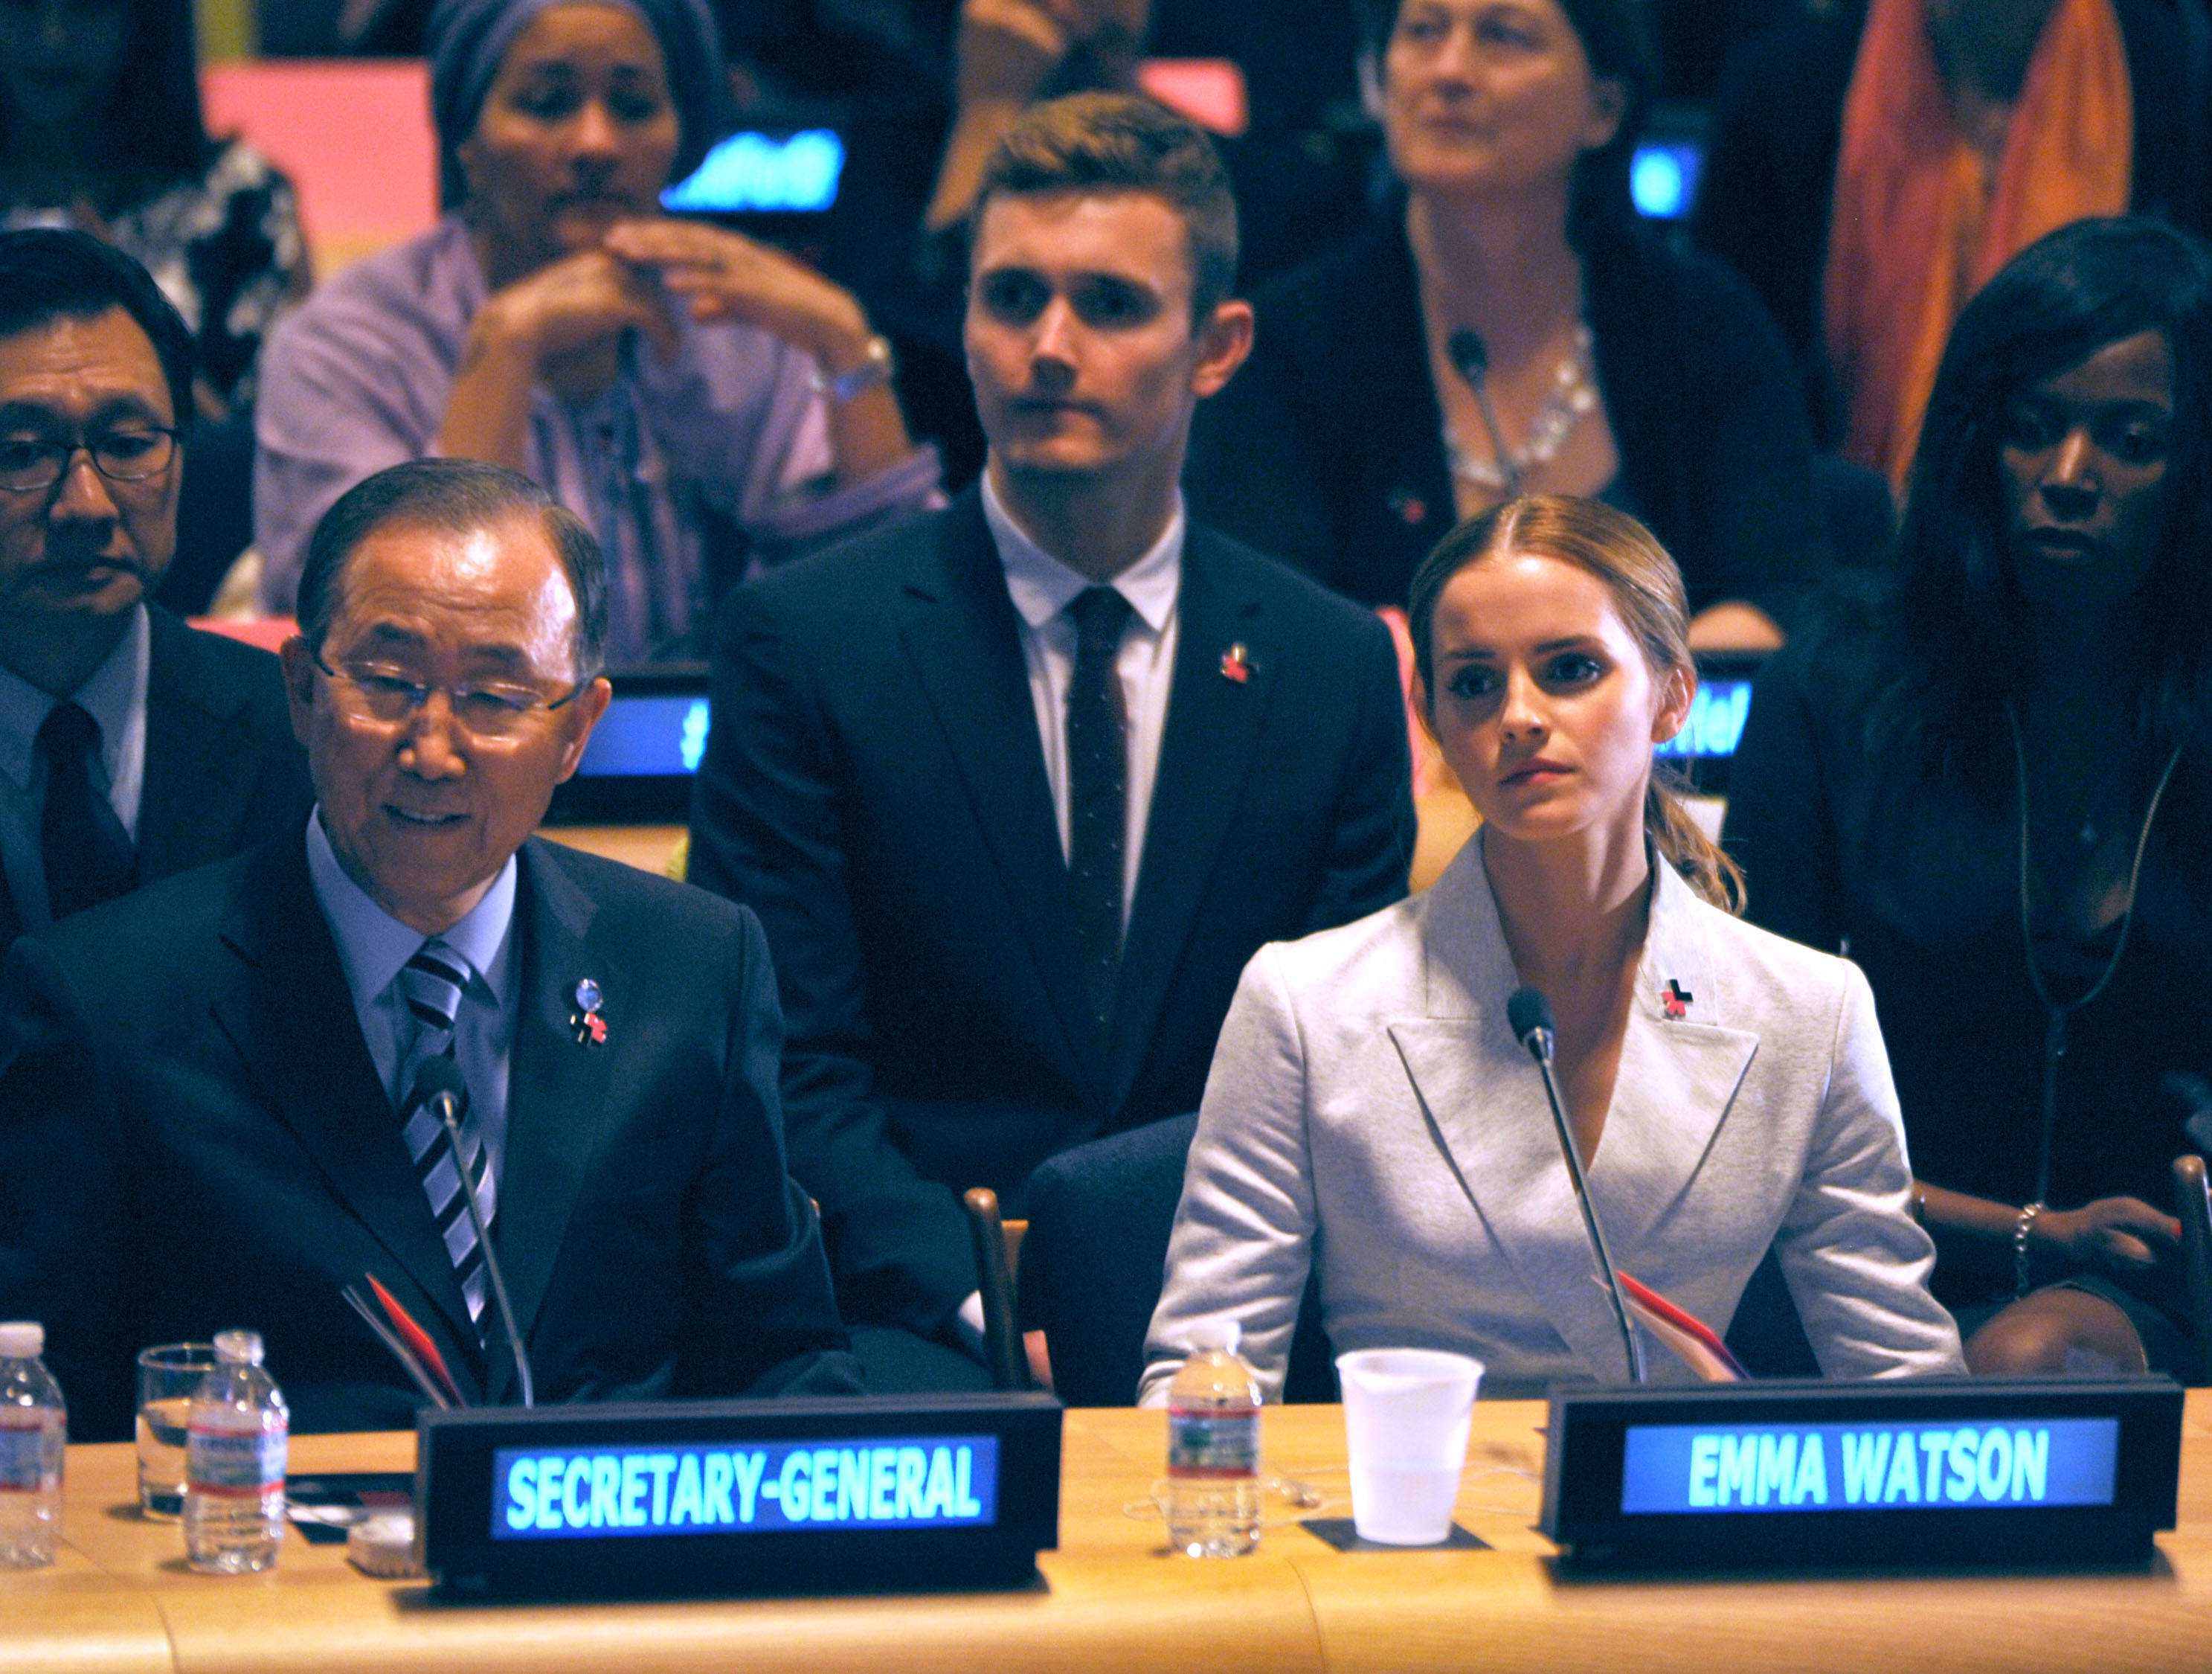 Emma Watson and Ban Ki-moon attend the launch of the HeForShe Campaign at the United Nations on September 20, 2014 in New York City.